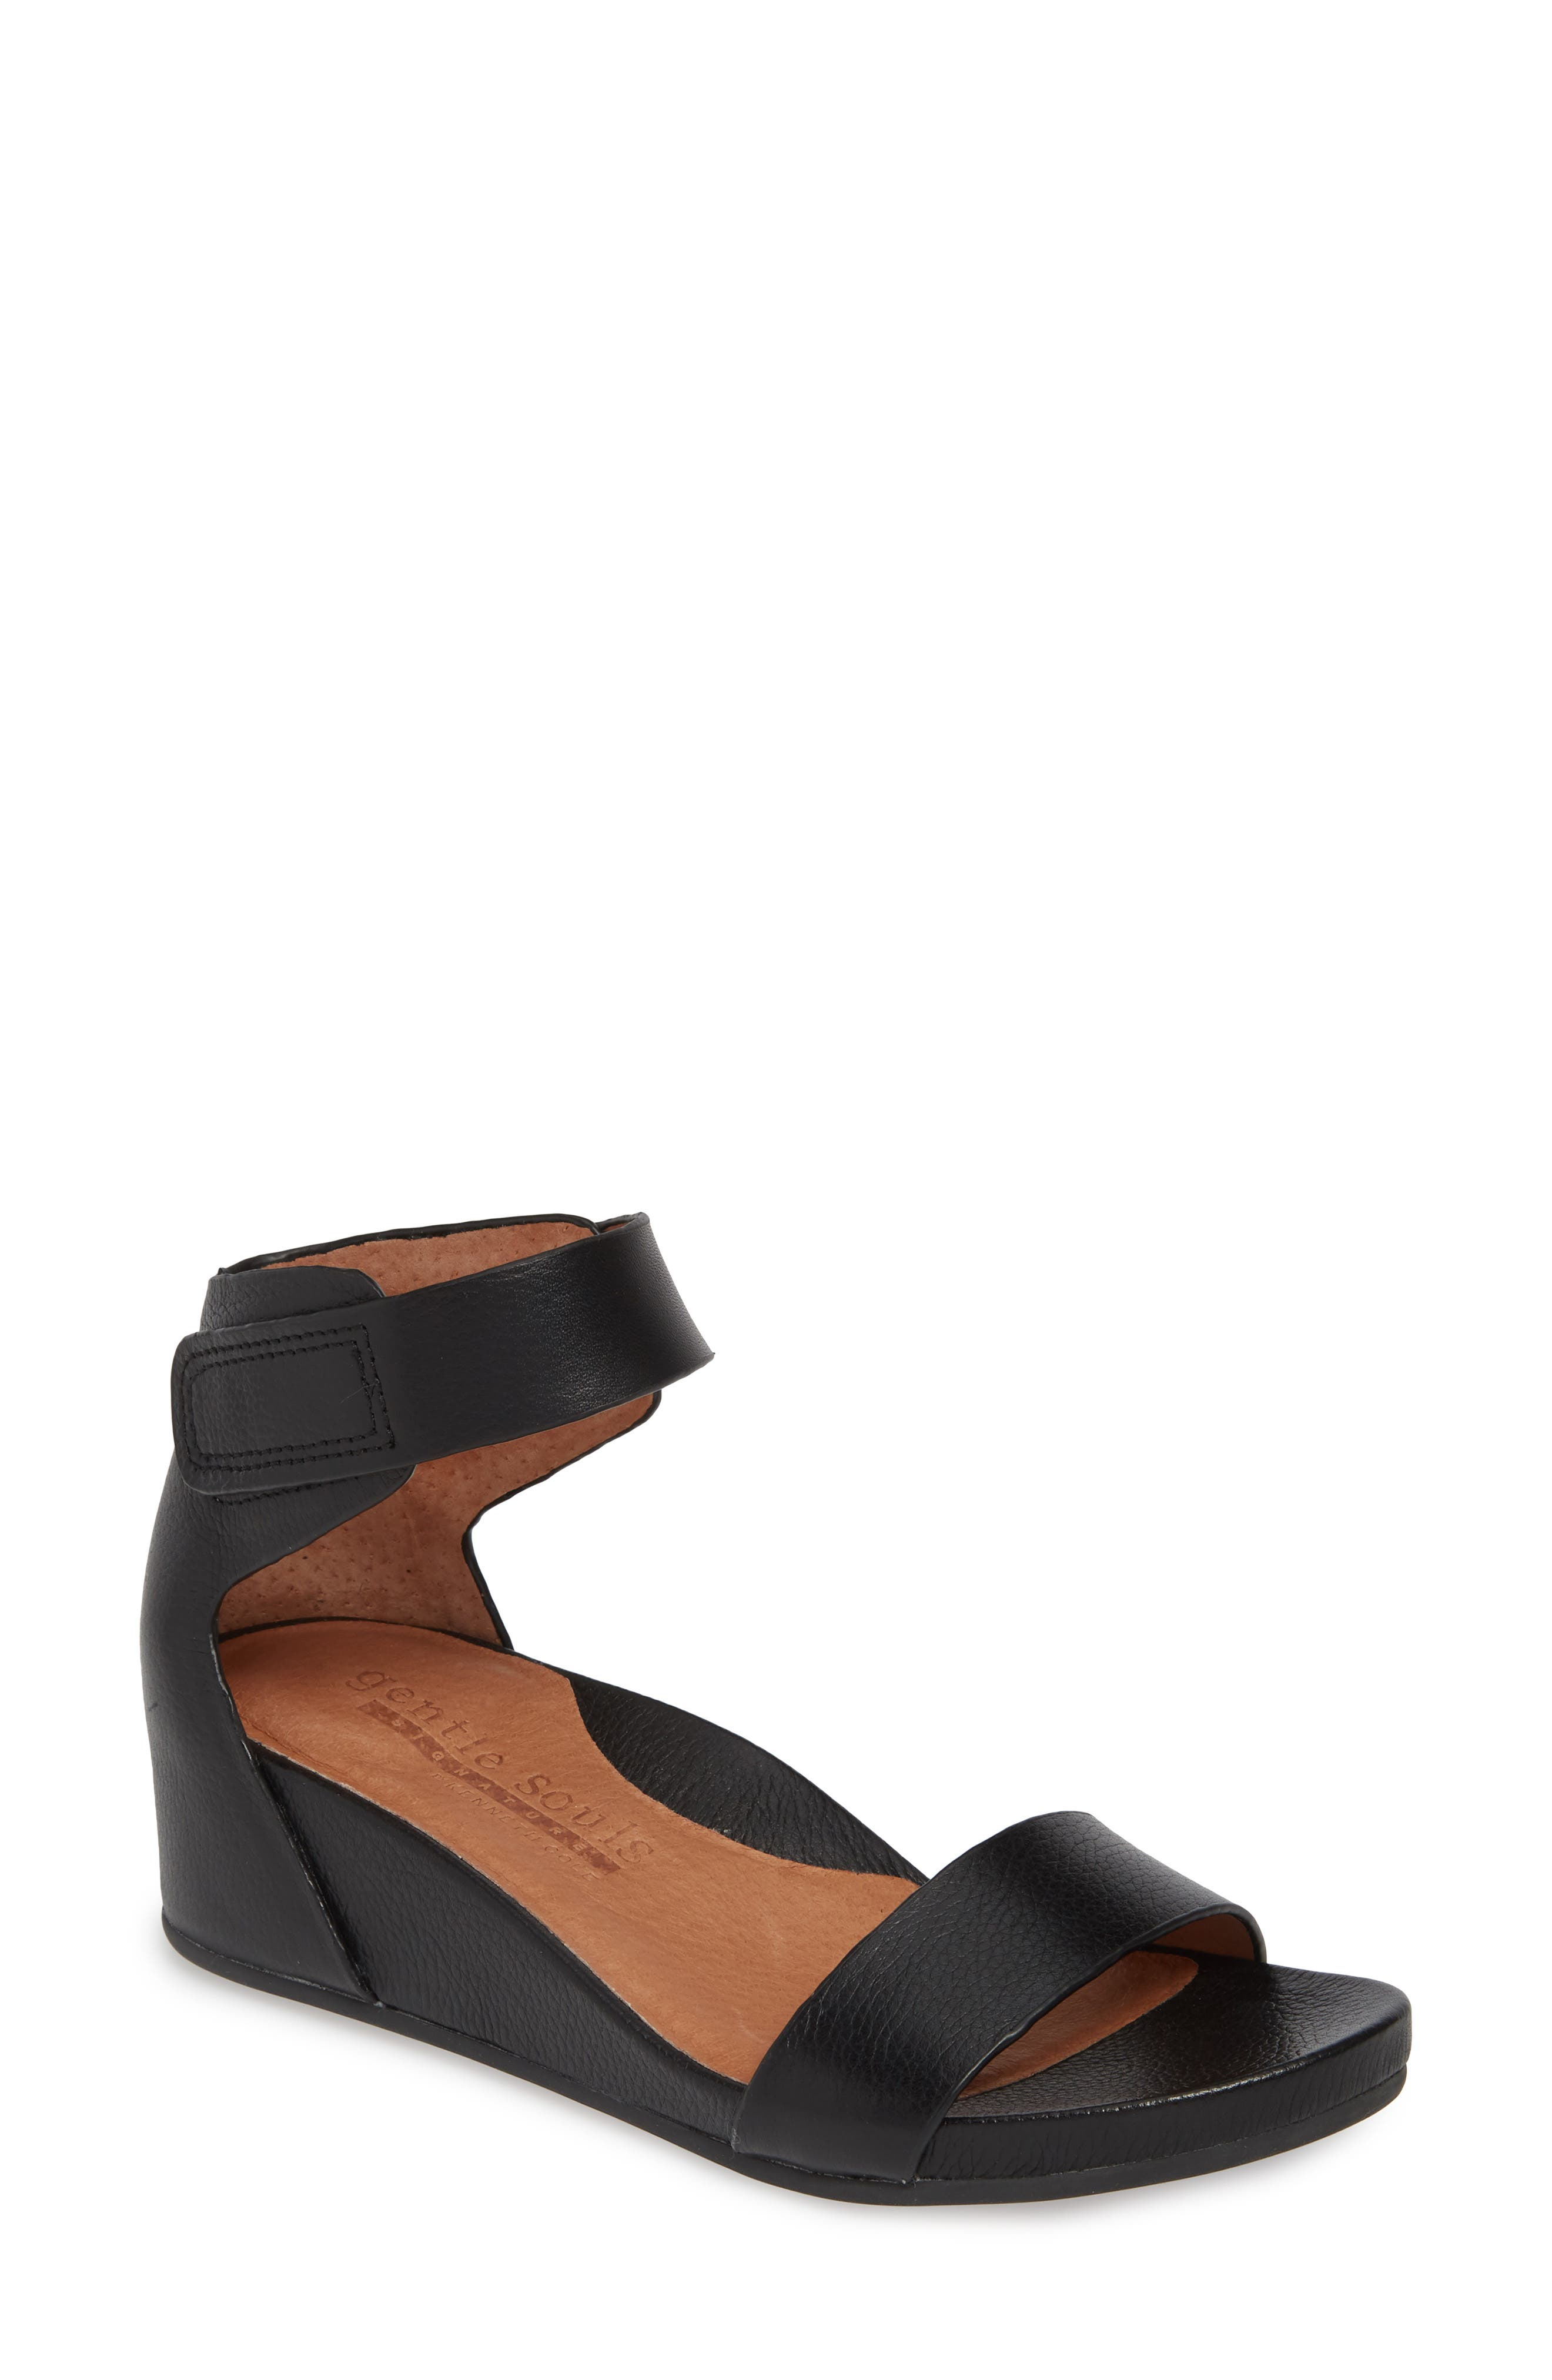 GENTLE SOULS SIGNATURE, Gianna Wedge Sandal, Main thumbnail 1, color, BLACK LEATHER